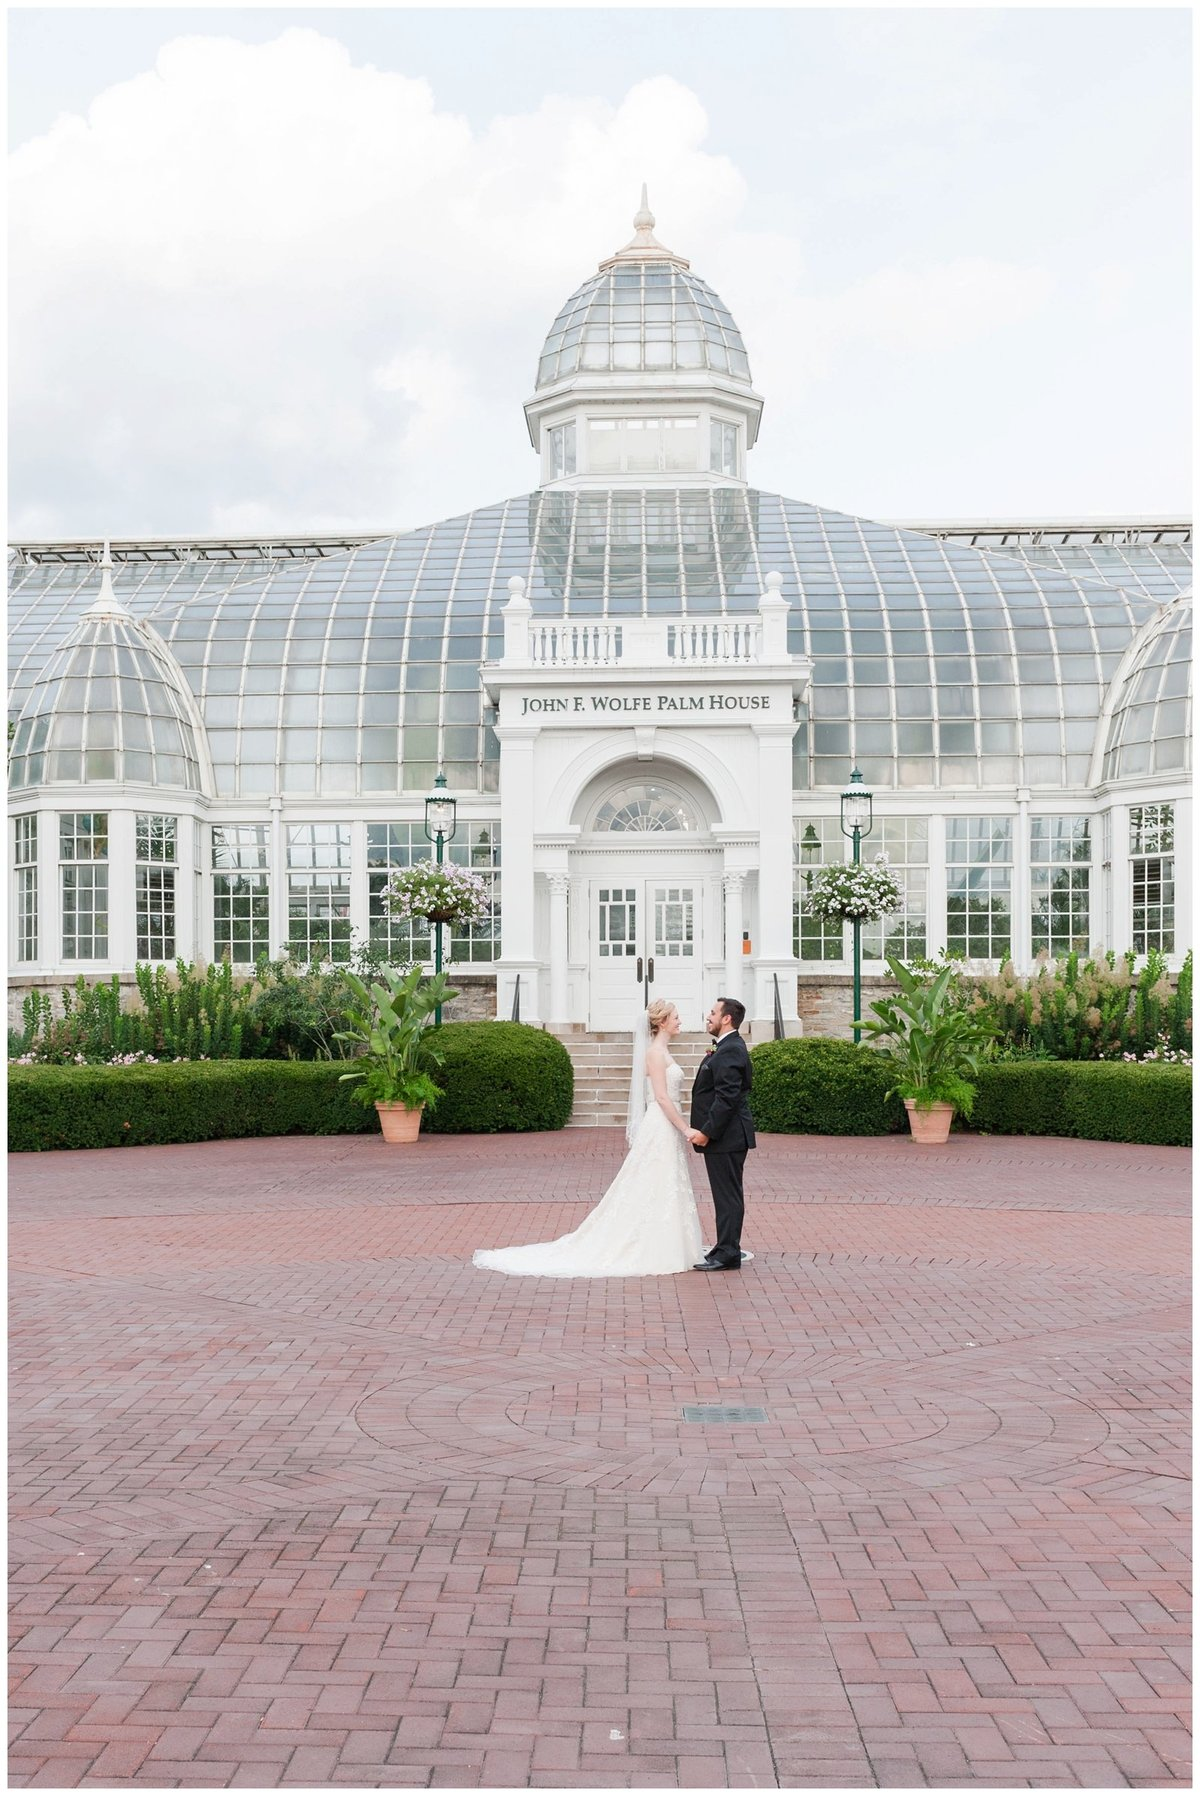 Franklin Park Conservatory Wedding The Palm House Bridal Garden Grove_0101